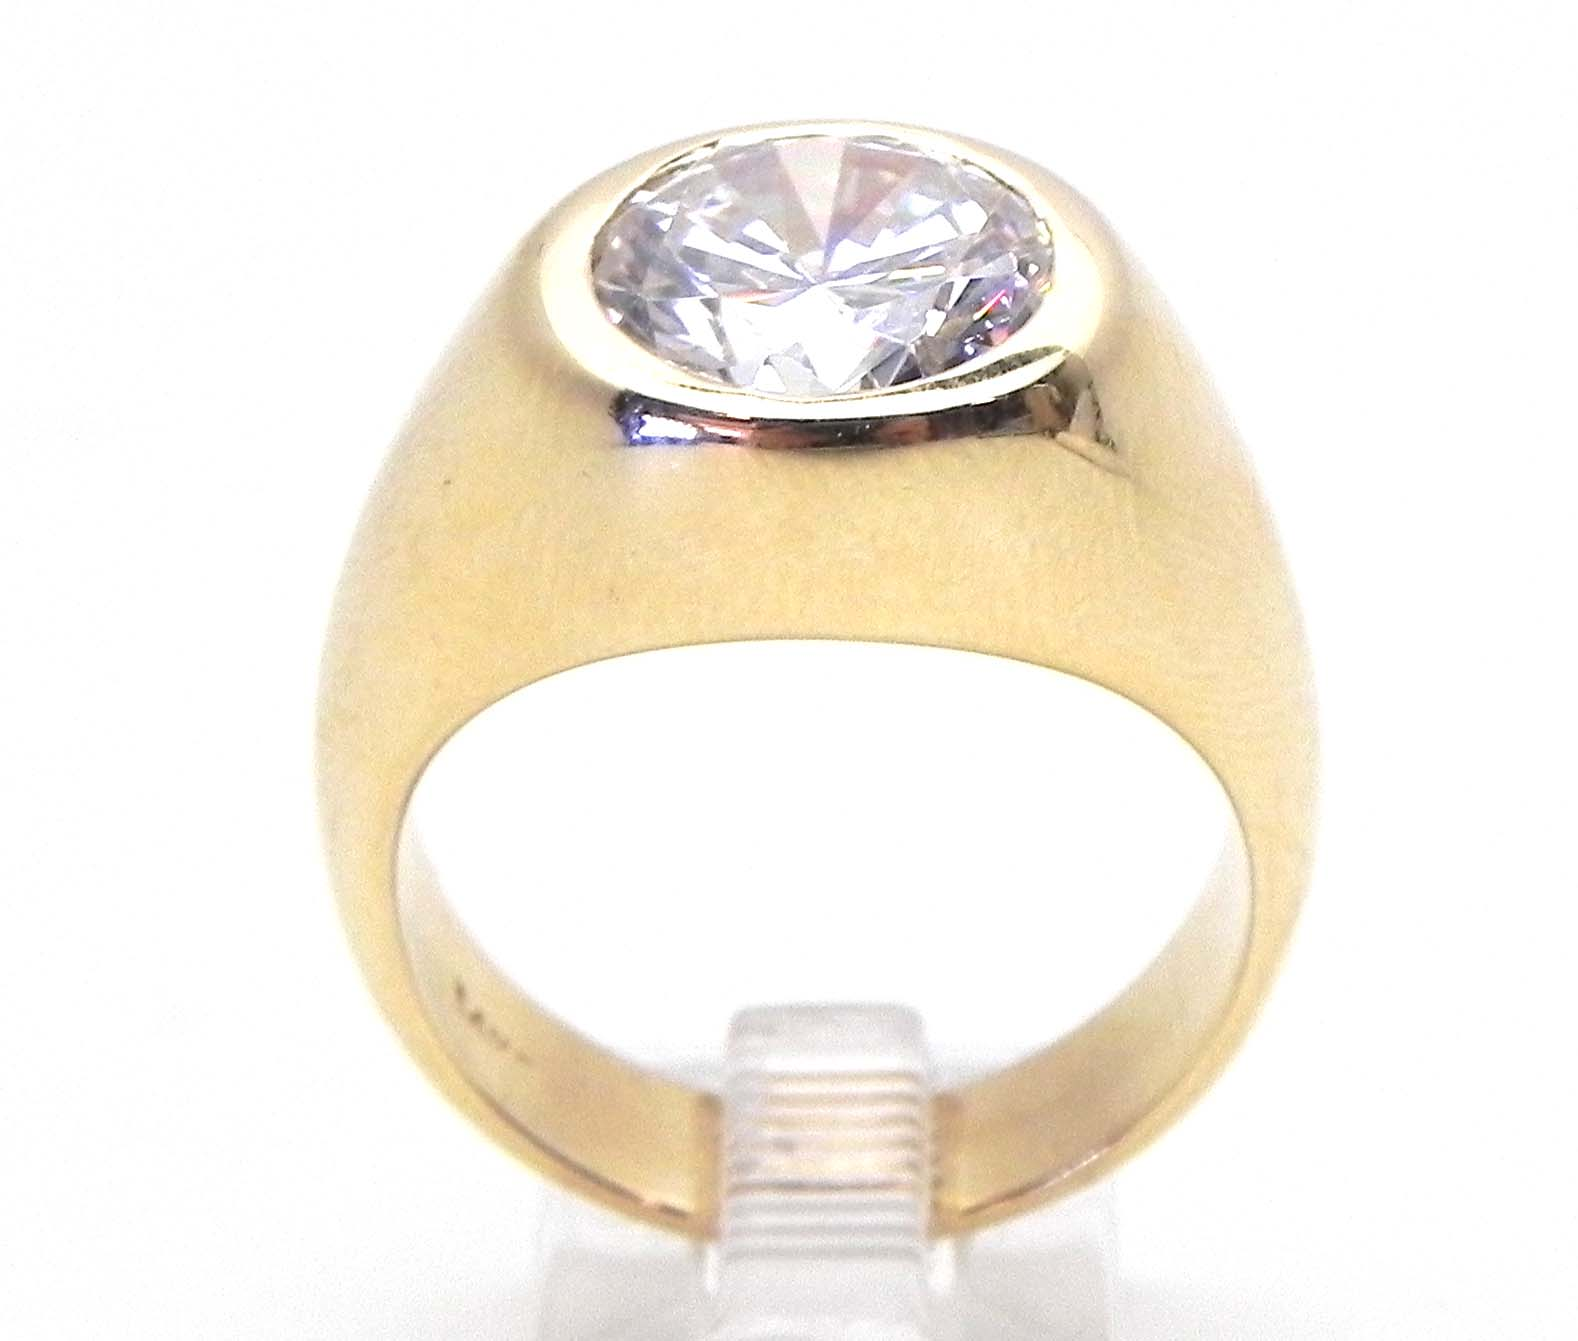 Mens 14k Yellow Gold Gypsy Ring WRound Cubic Zurconia